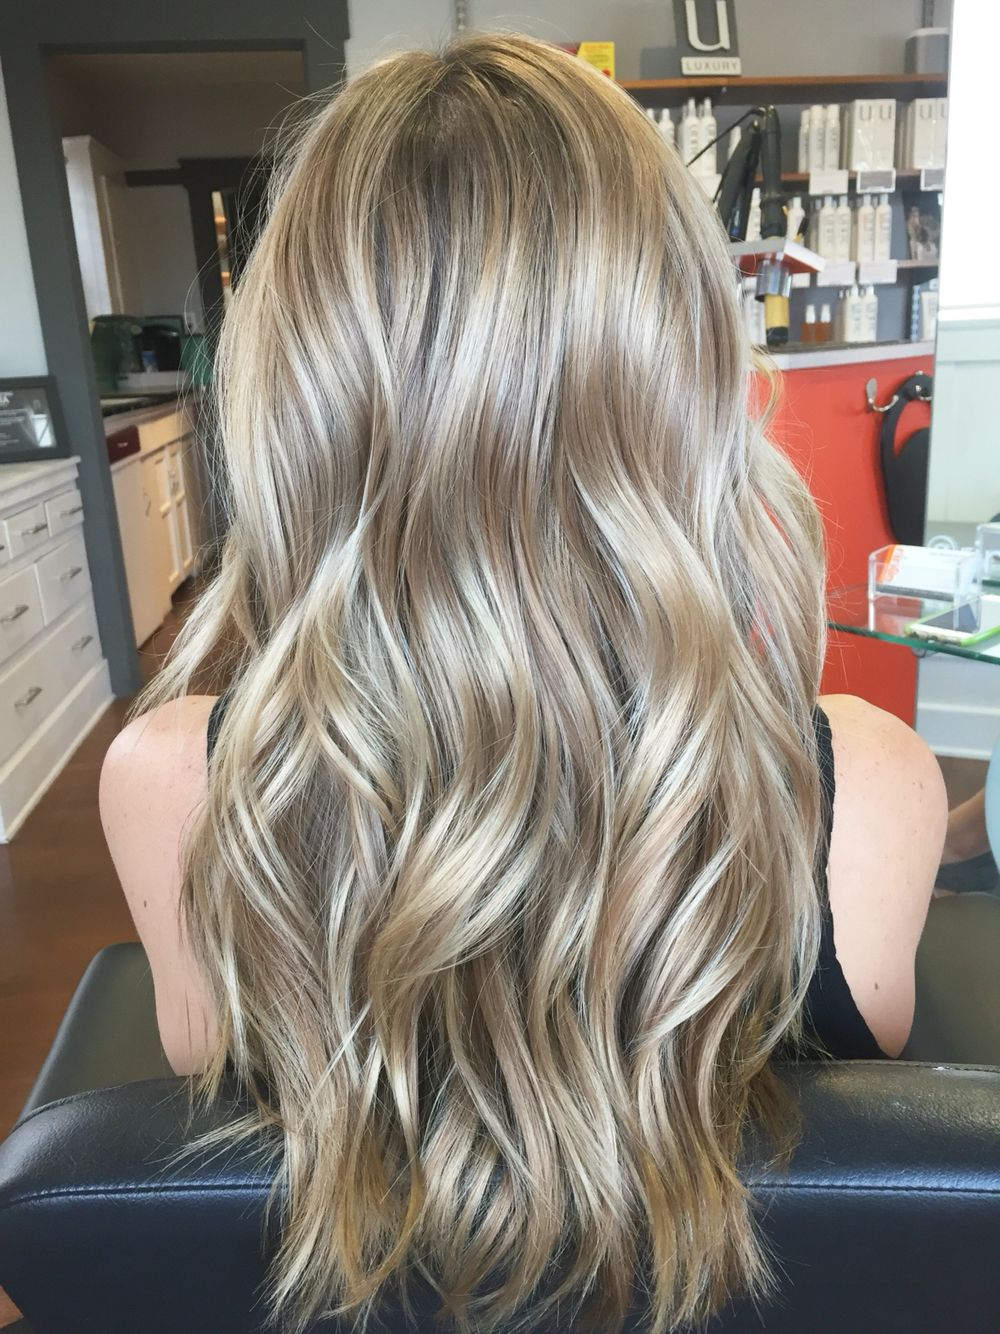 Blonde Hair Painting : blonde, painting, Blonde, Beauty., Painting, Moves, Rinse, Owner, #BLONDE, #HAIRPAINTING, #BALAYAGE, Colour,, Styles,